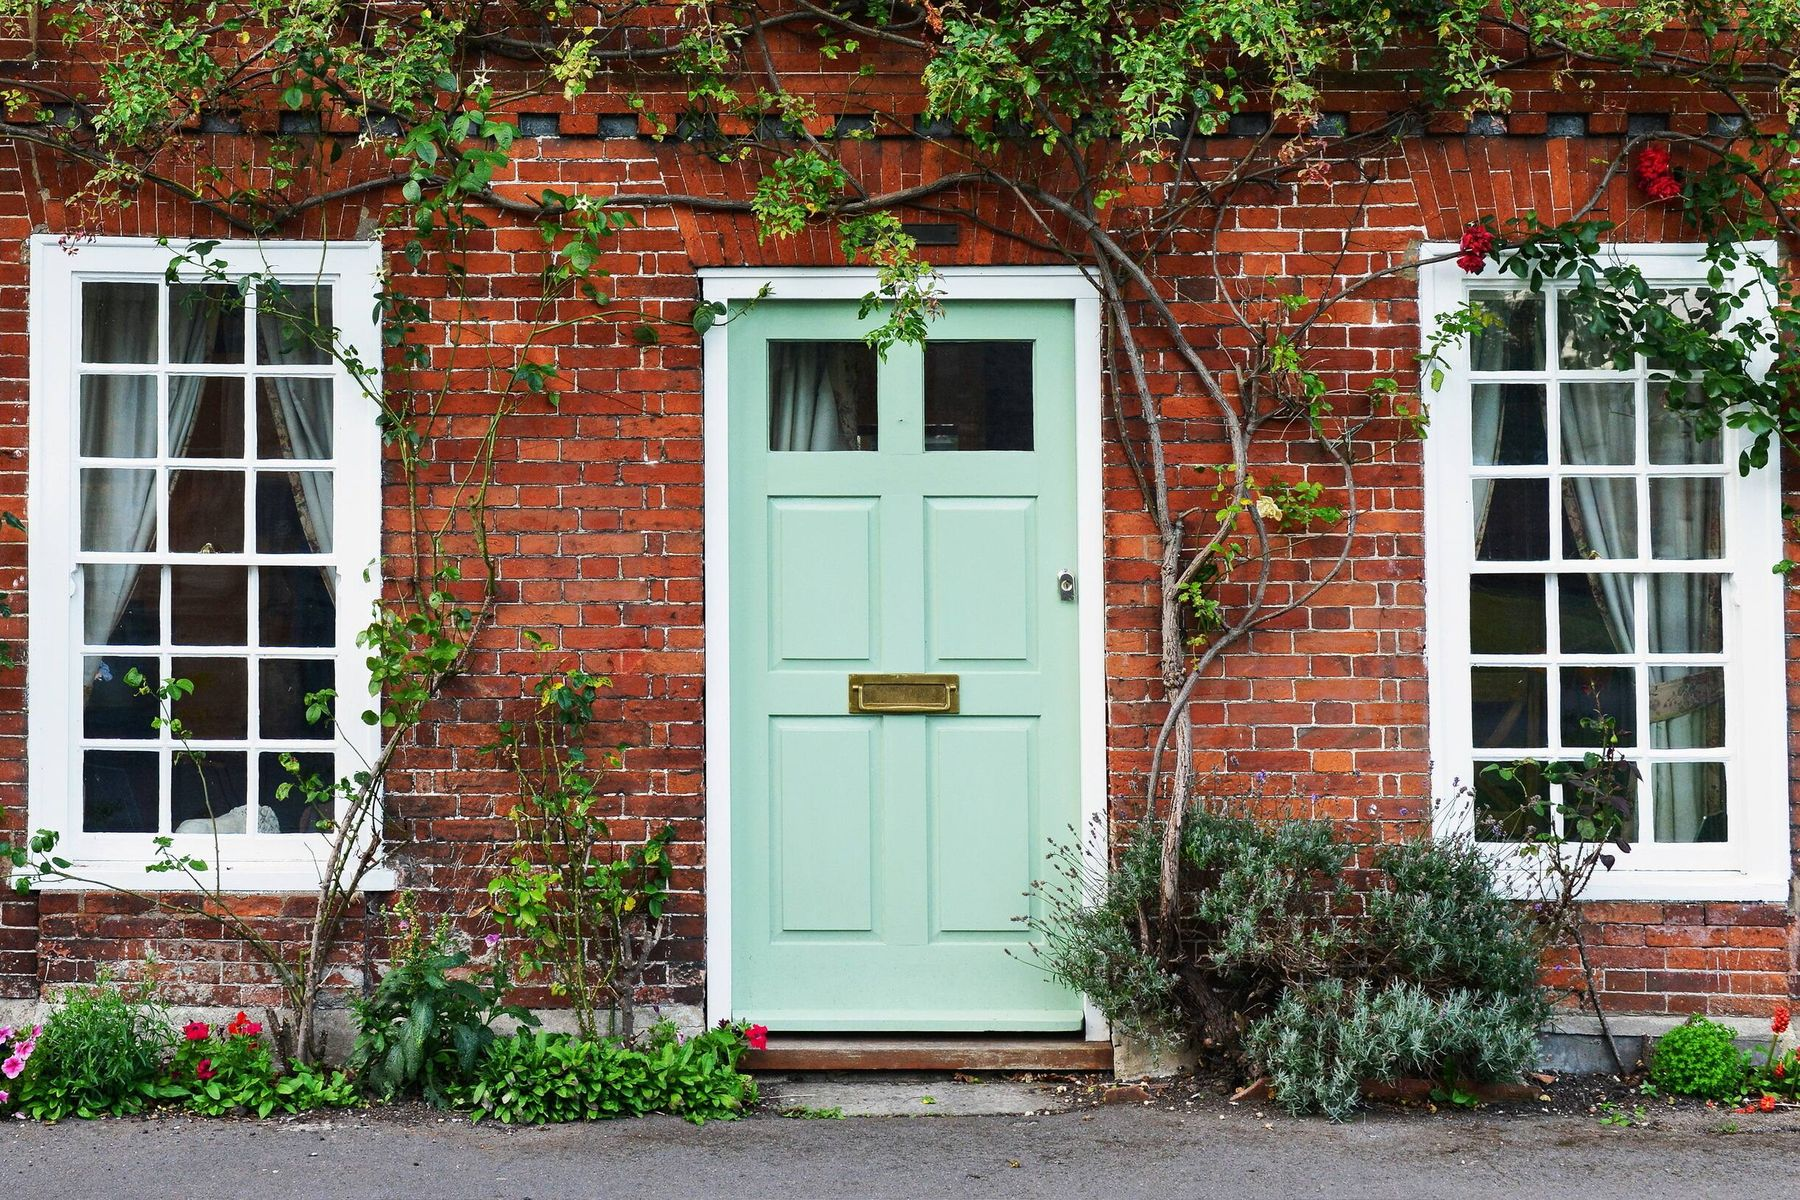 Try This Process to Clean the Frames of Your Doors and Windows